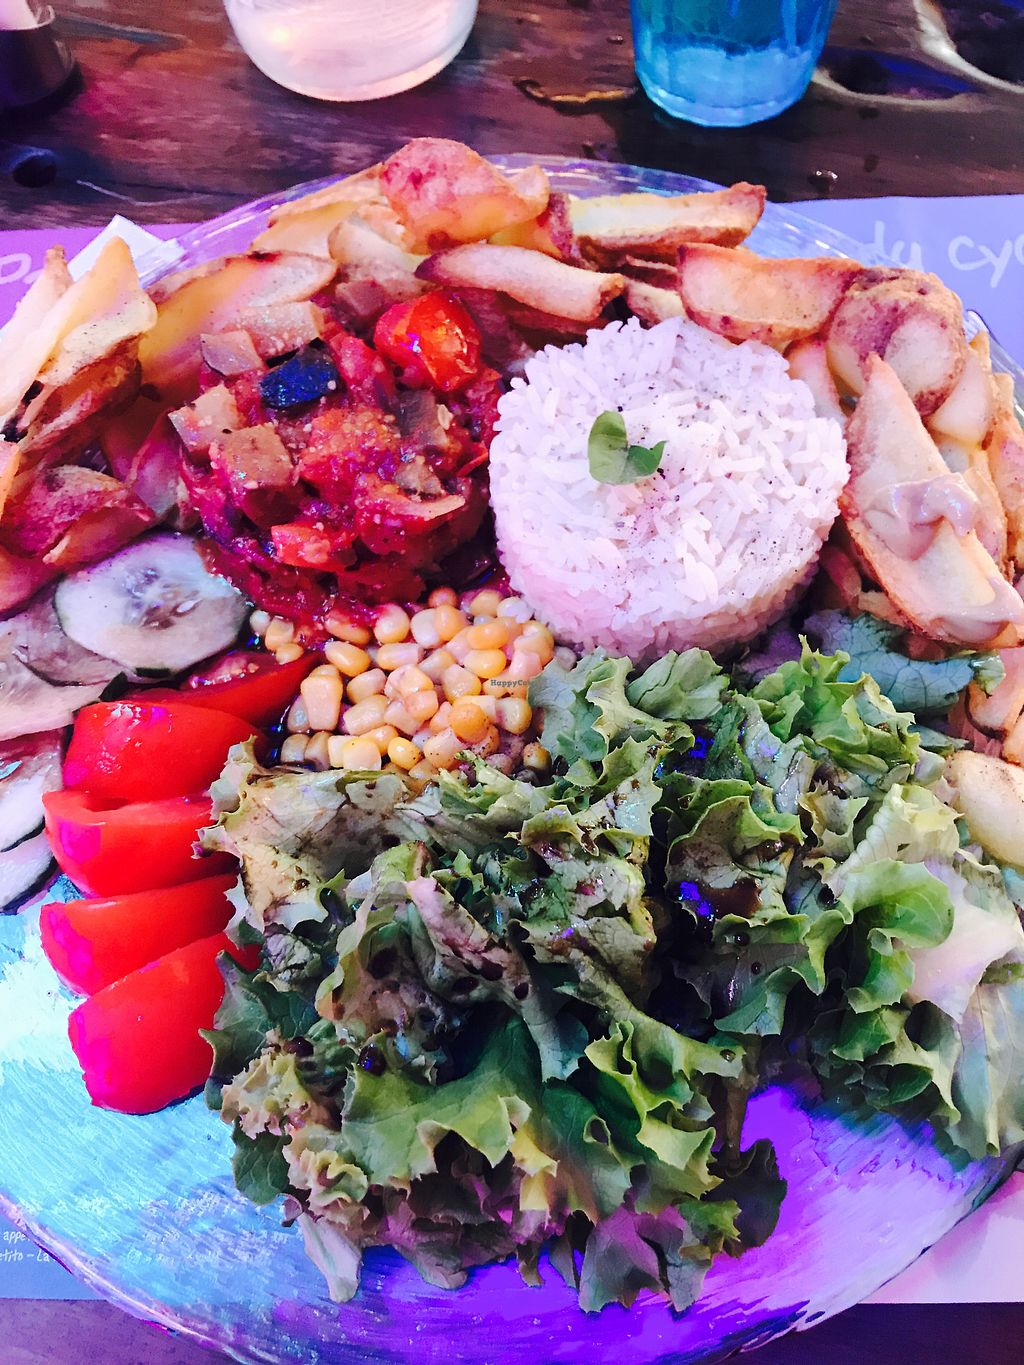 """Photo of Cosy Lunch  by <a href=""""/members/profile/LazyVegan"""">LazyVegan</a> <br/>L'assiette vegan <br/> July 28, 2017  - <a href='/contact/abuse/image/70382/285760'>Report</a>"""